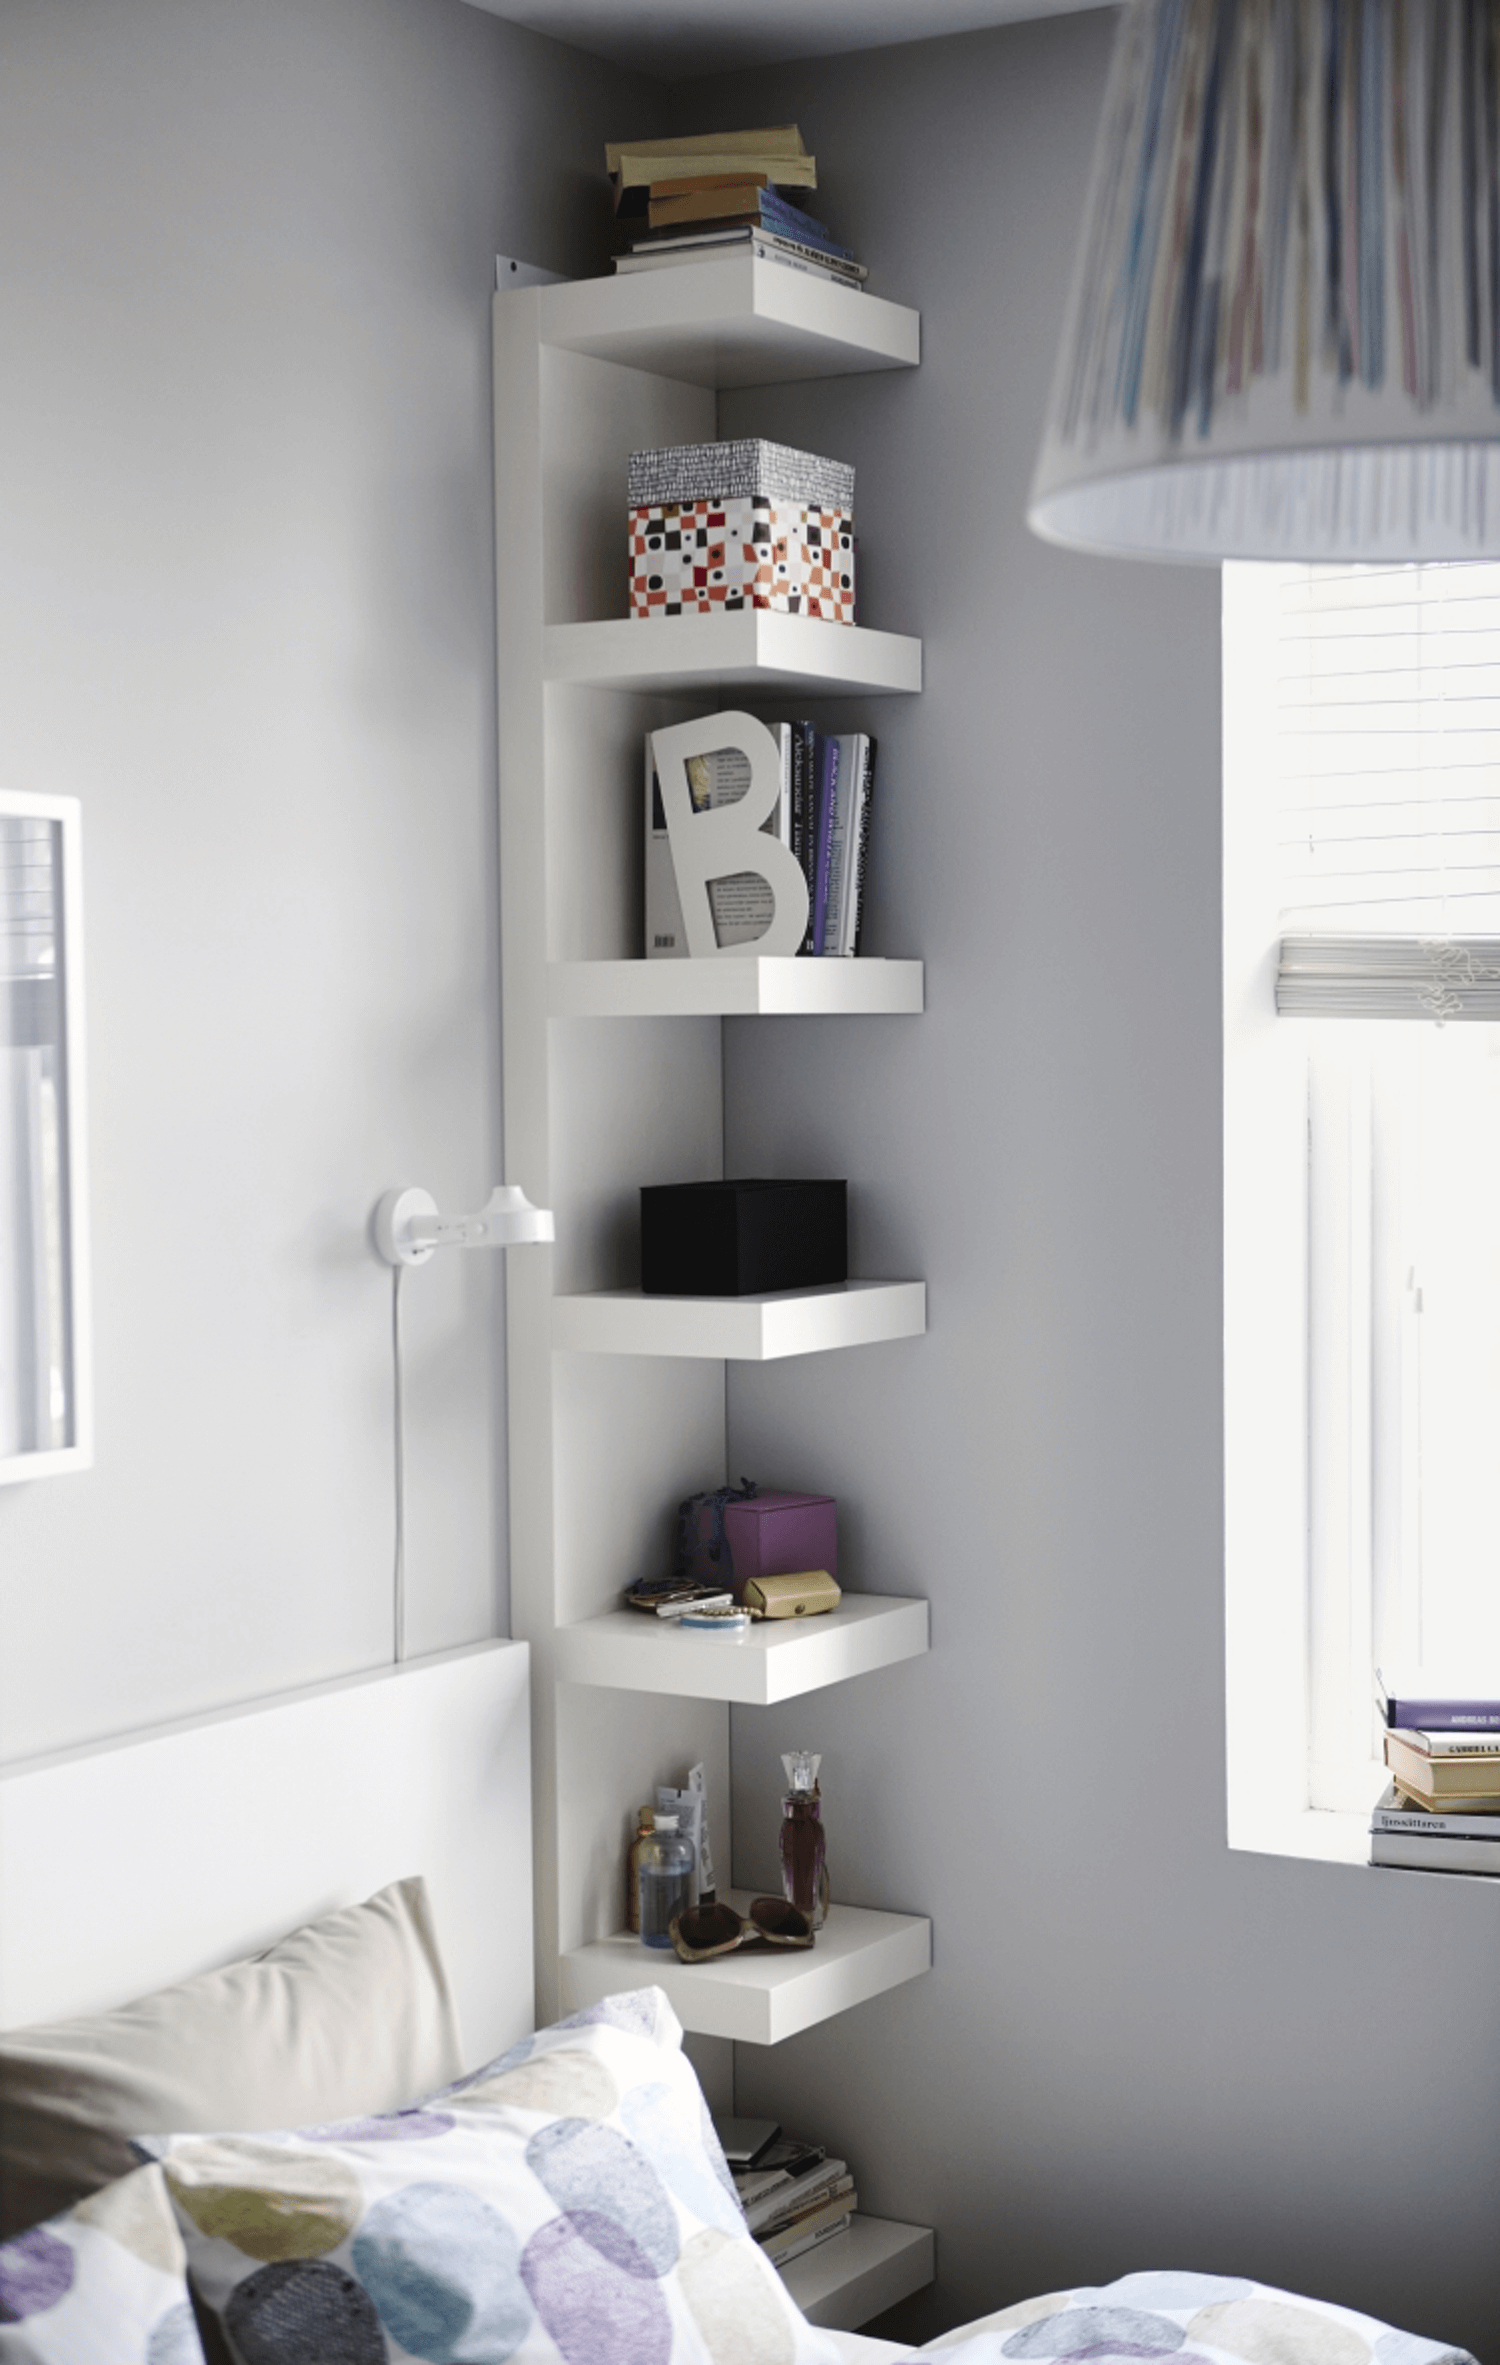 small bedroom storage ideas - use a floor-to-ceiling shelving unit